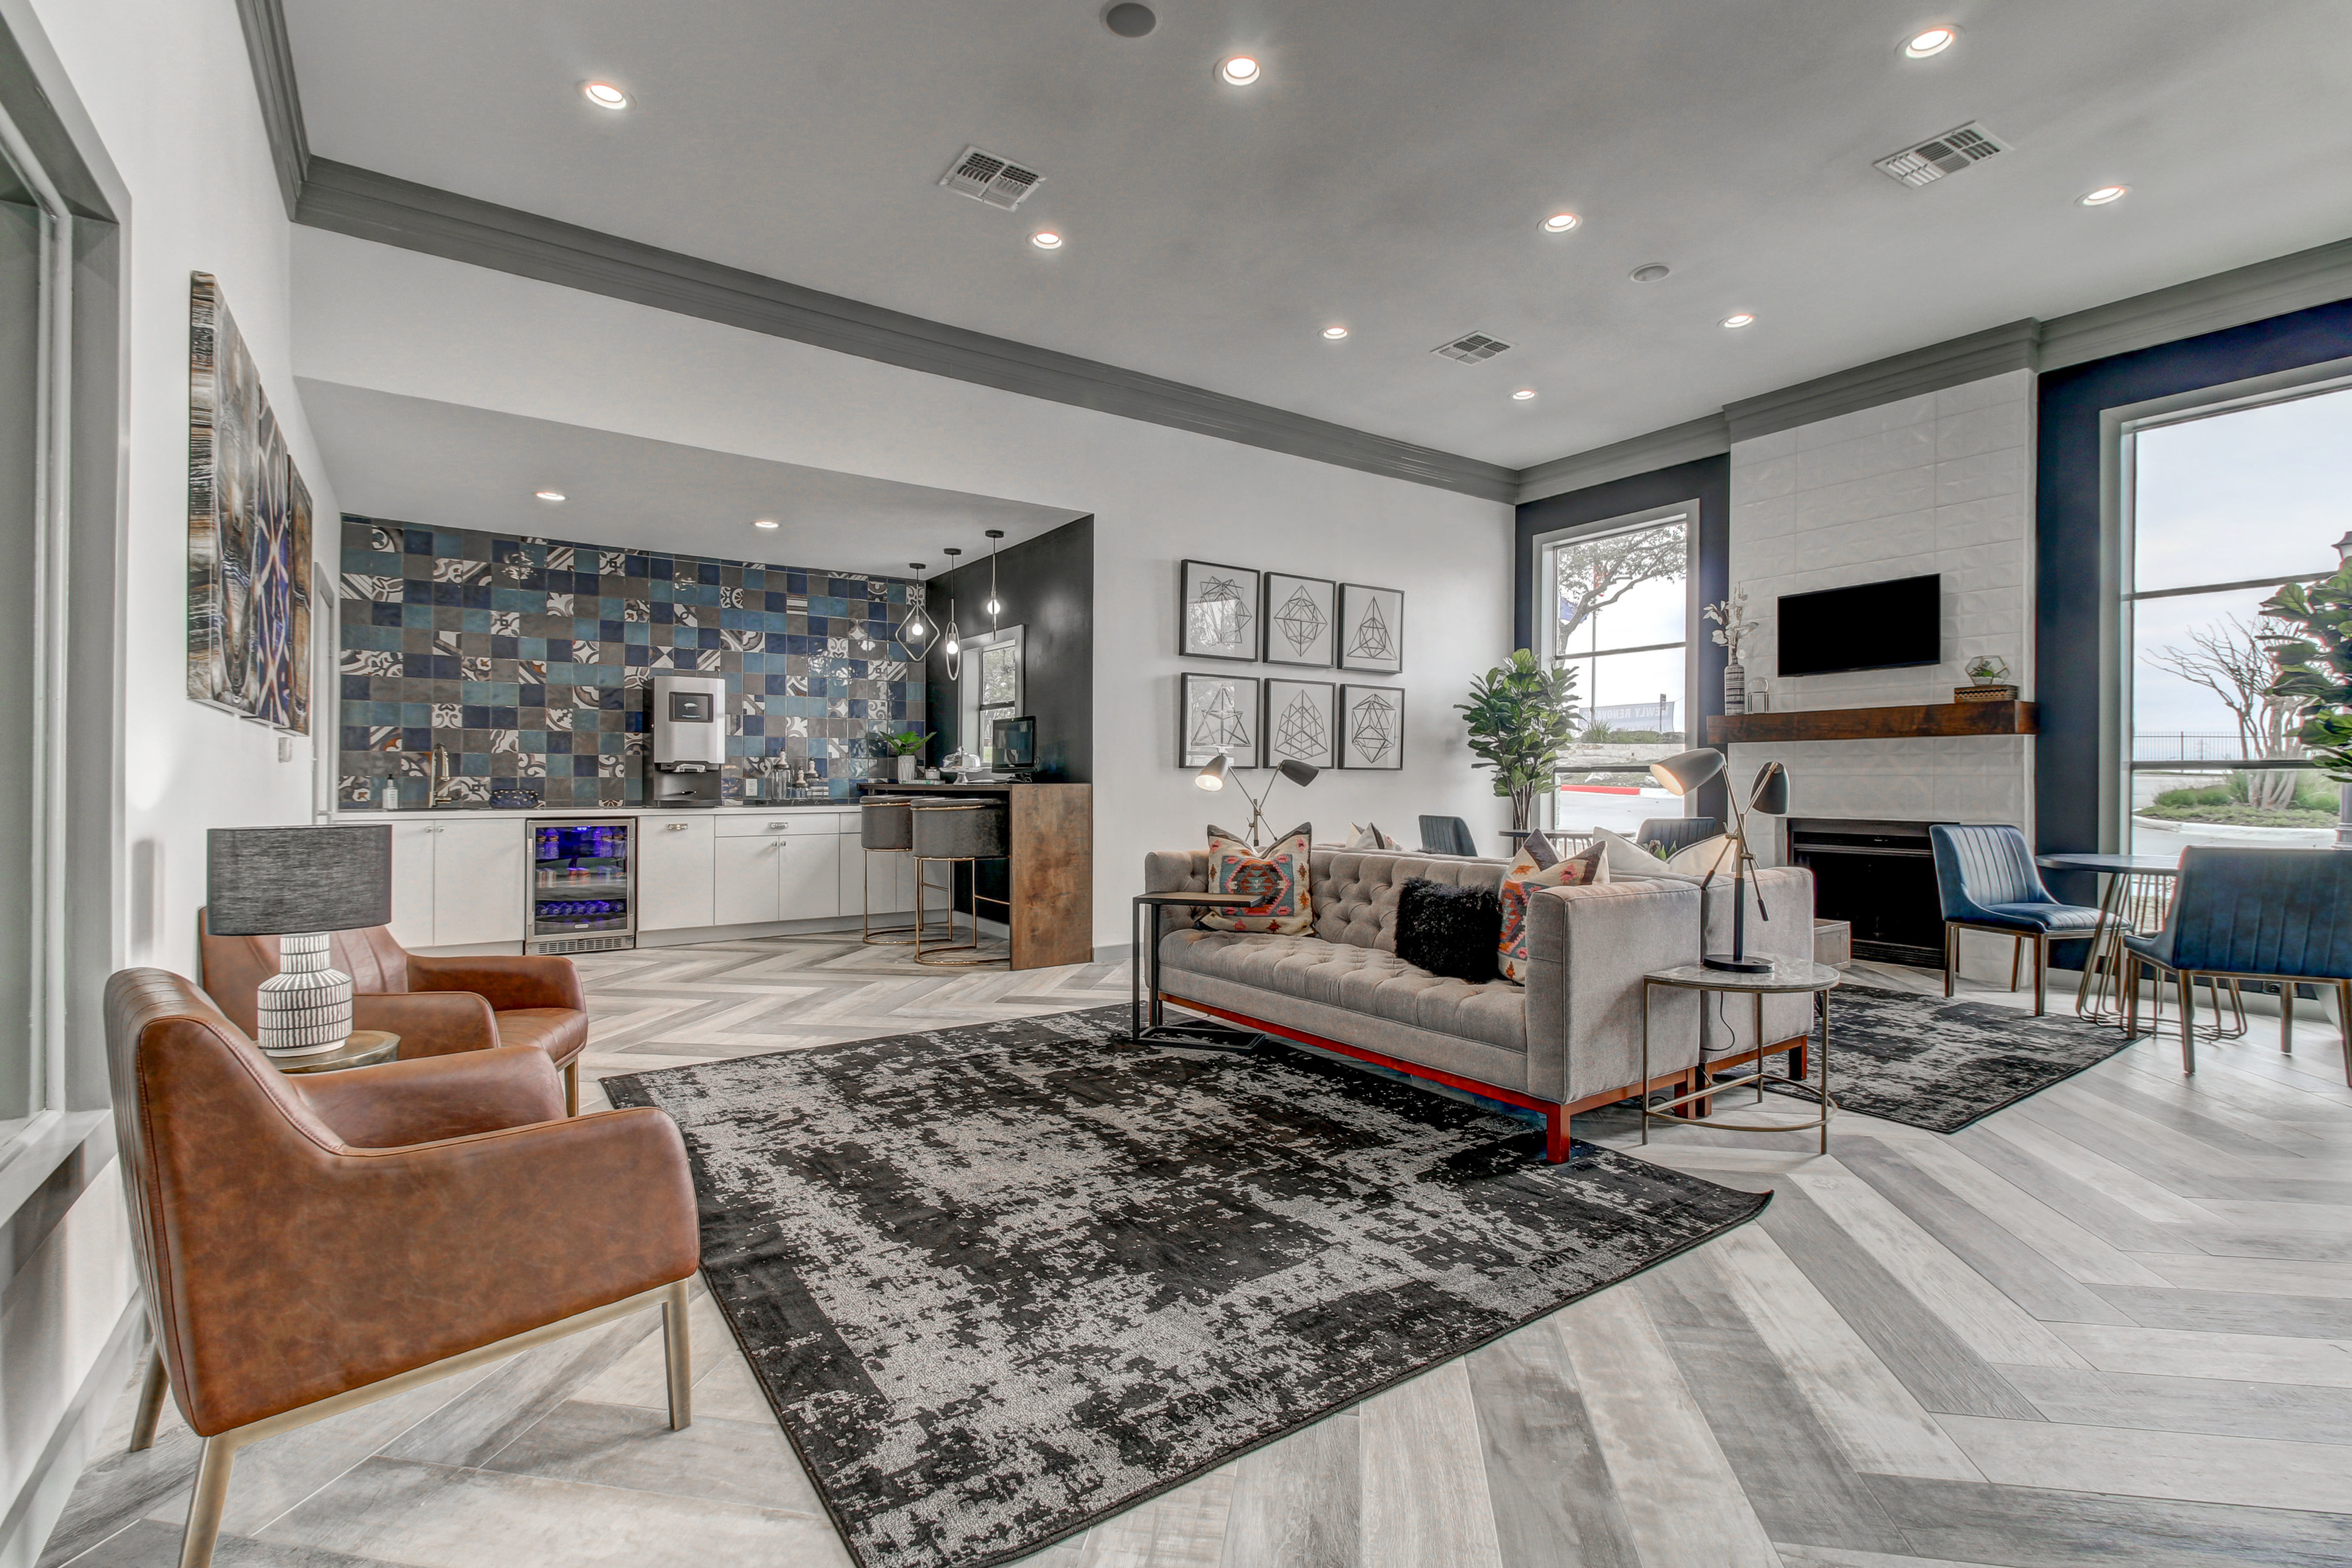 Image of Stunning Hotel Inspired Lobby for NOAH Apartments